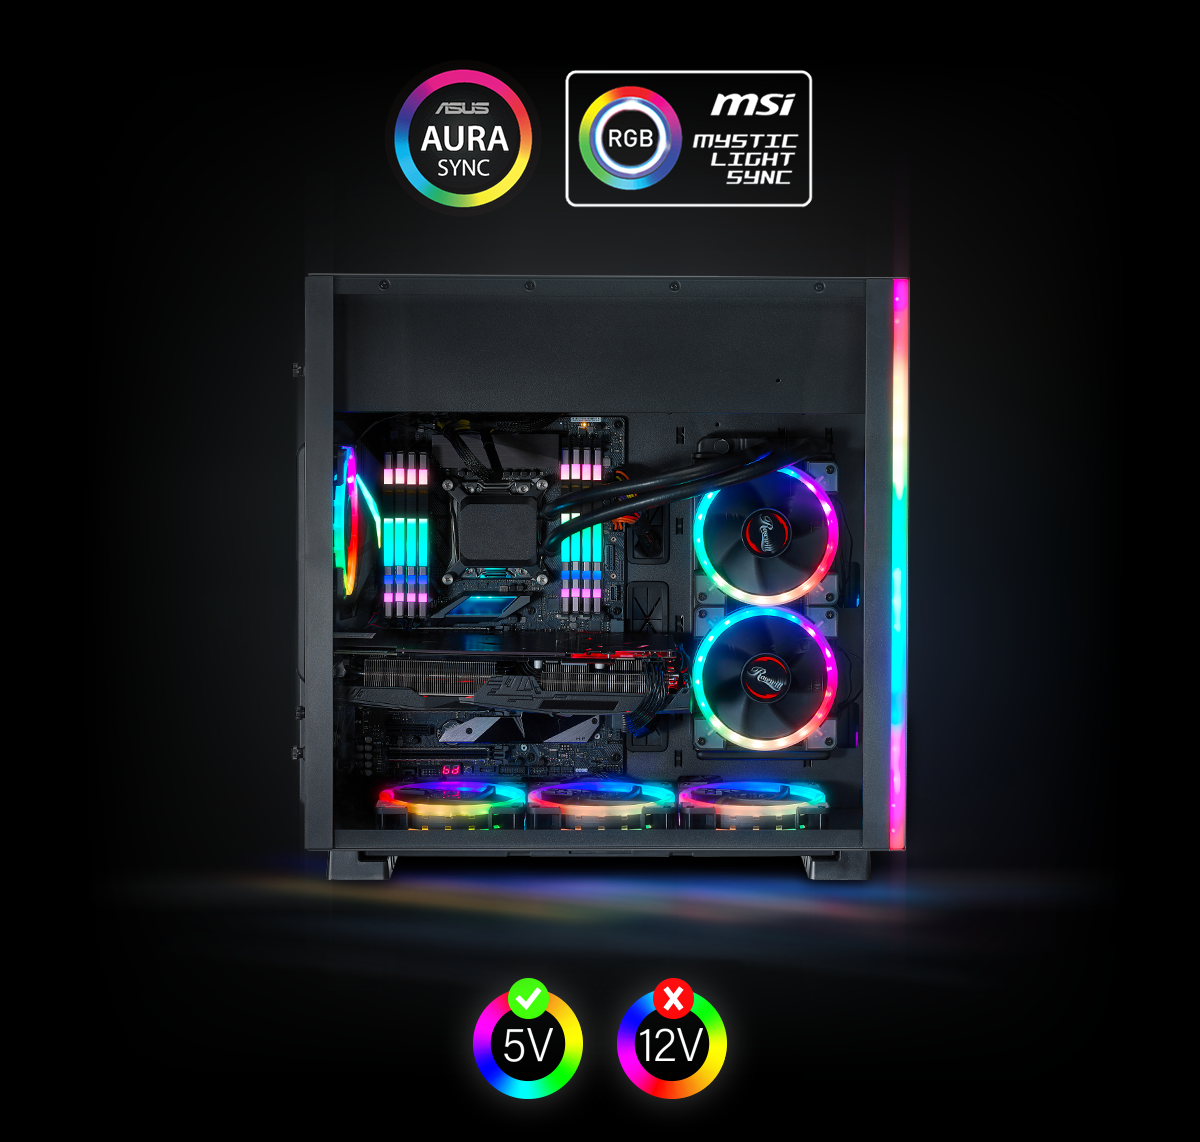 Rosewill ATX Mid Tower Gaming PC Computer Case, Aura Sync Compatible Dual  Ring RGB LED Fans, Top Mount PSU & HDD/SSD, Tempered Glass & Steel - PRISM